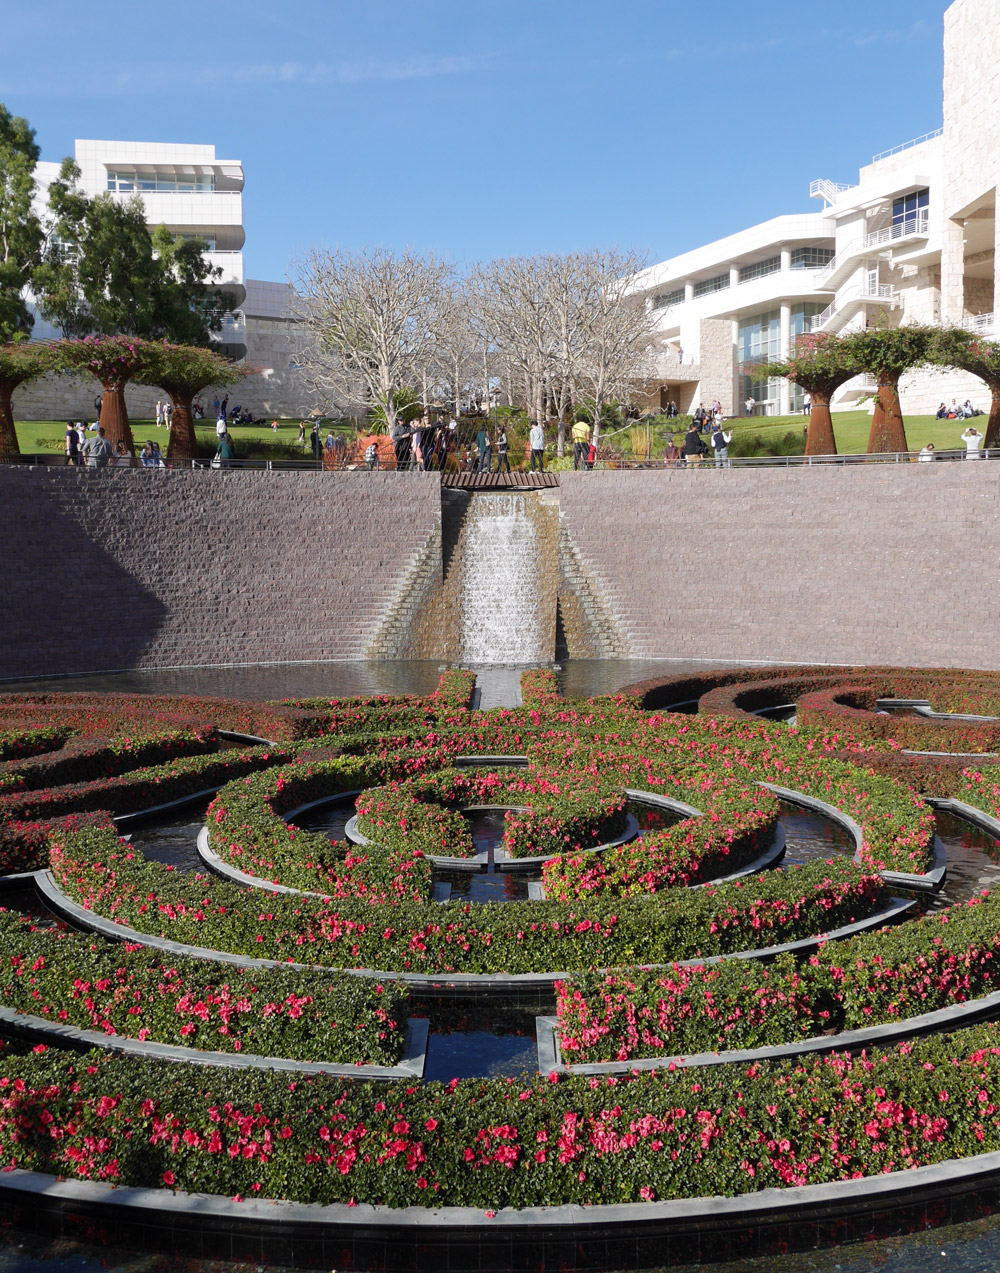 Gardens at the Getty Museum, Los Angeles